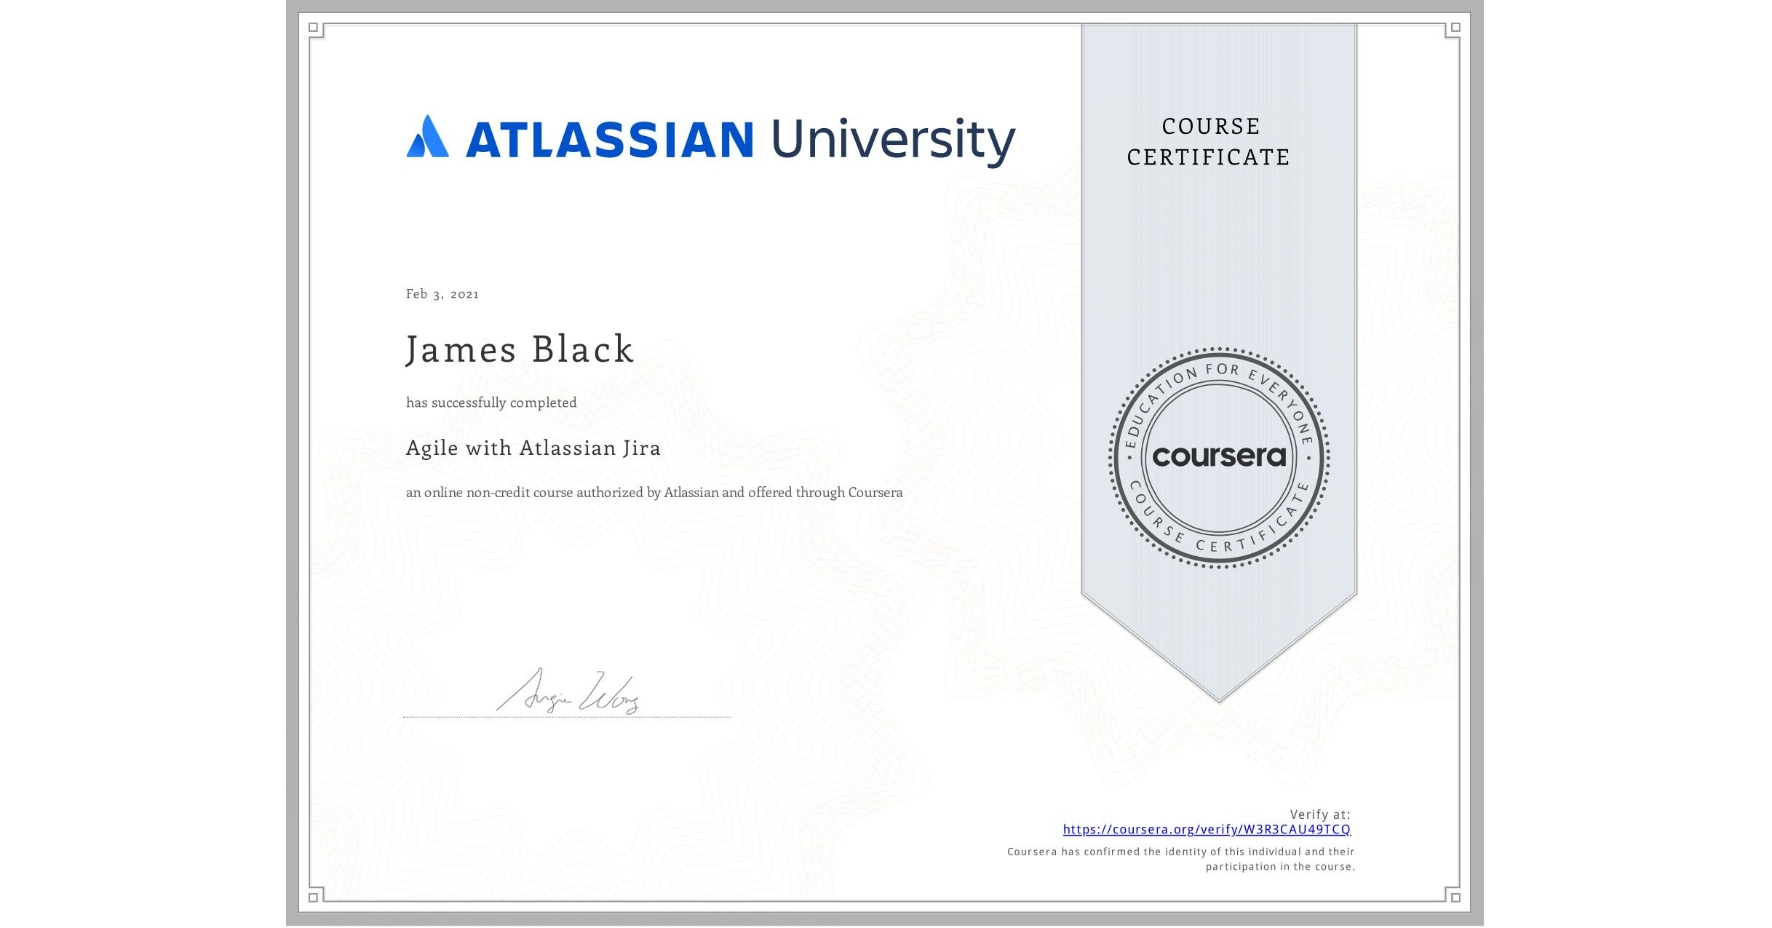 View certificate for James Black, Agile with Atlassian Jira, an online non-credit course authorized by Atlassian and offered through Coursera